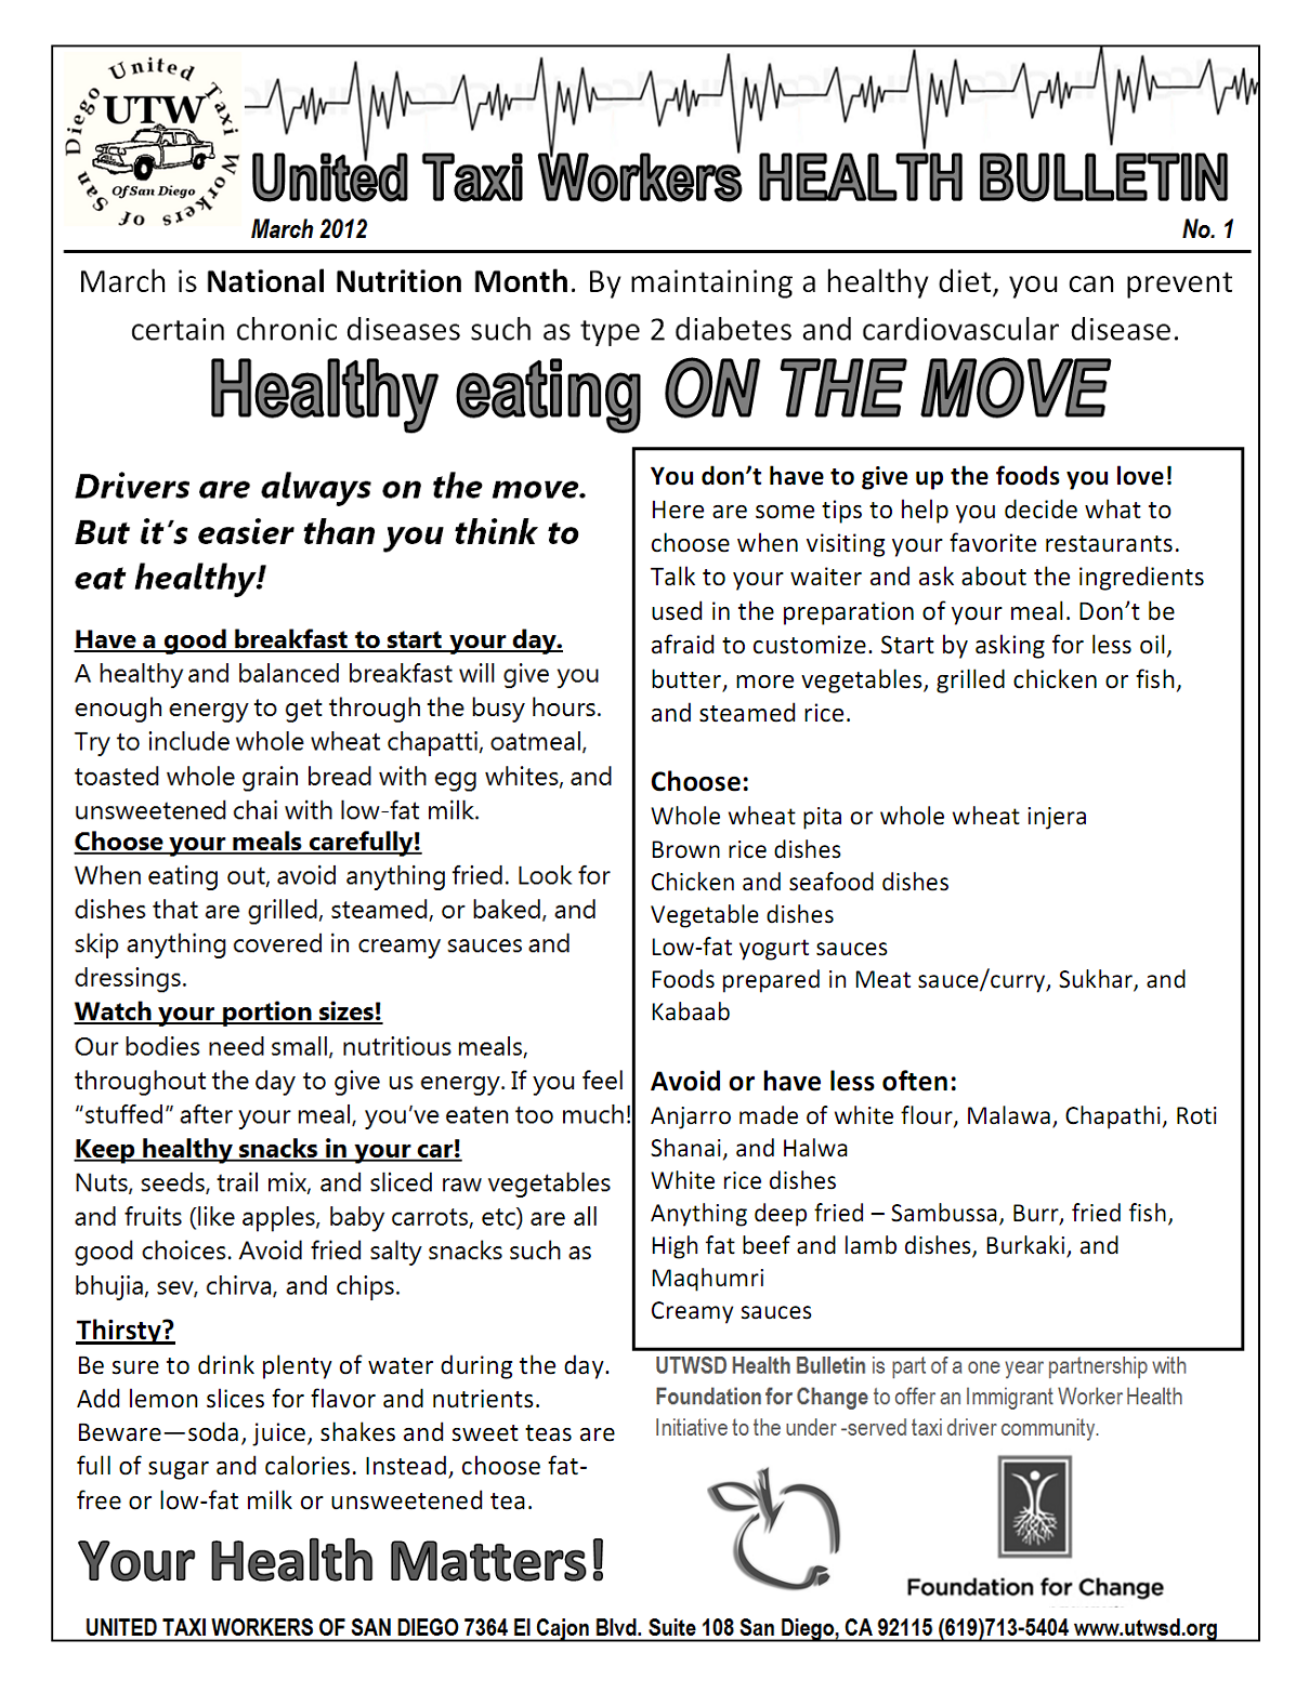 March 2012 Health Bulletin